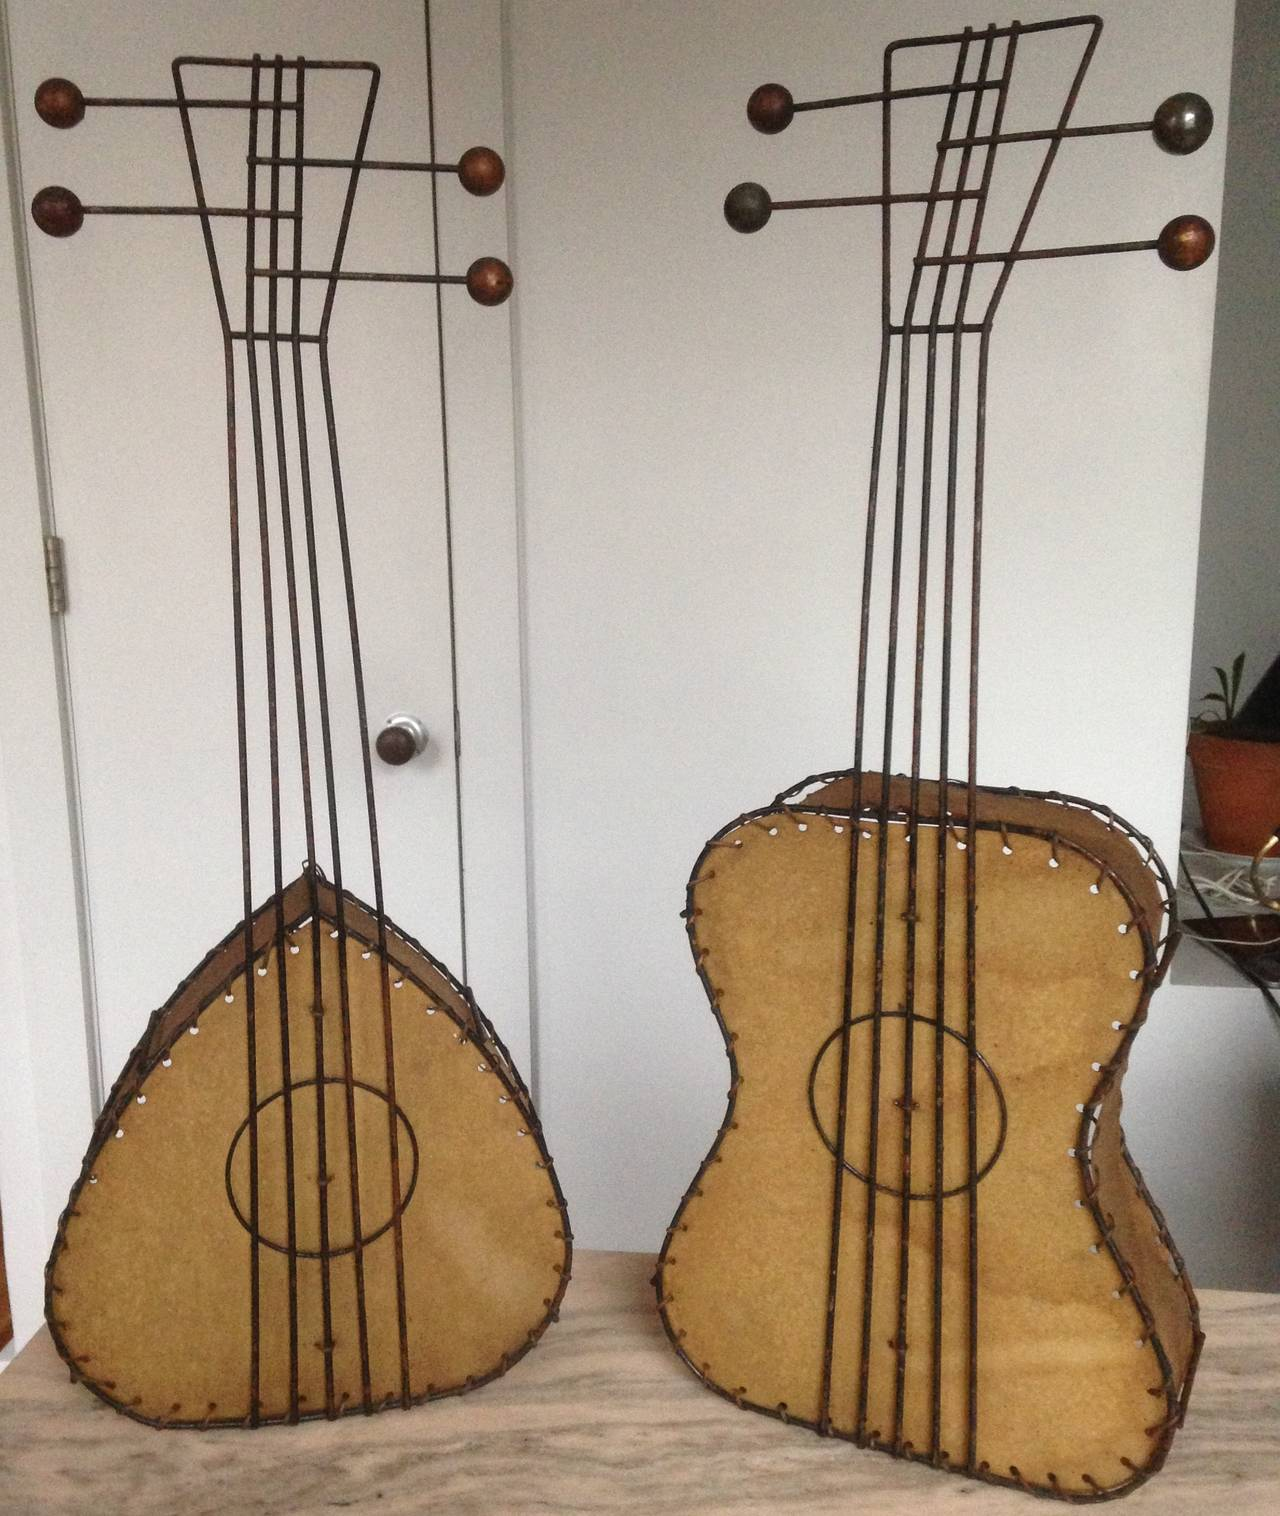 Table or wall lamps in the shape of a guitar and lute. Paper shade with metal frame with back-lit bulb with a Picasso-like sculptural sensibility.